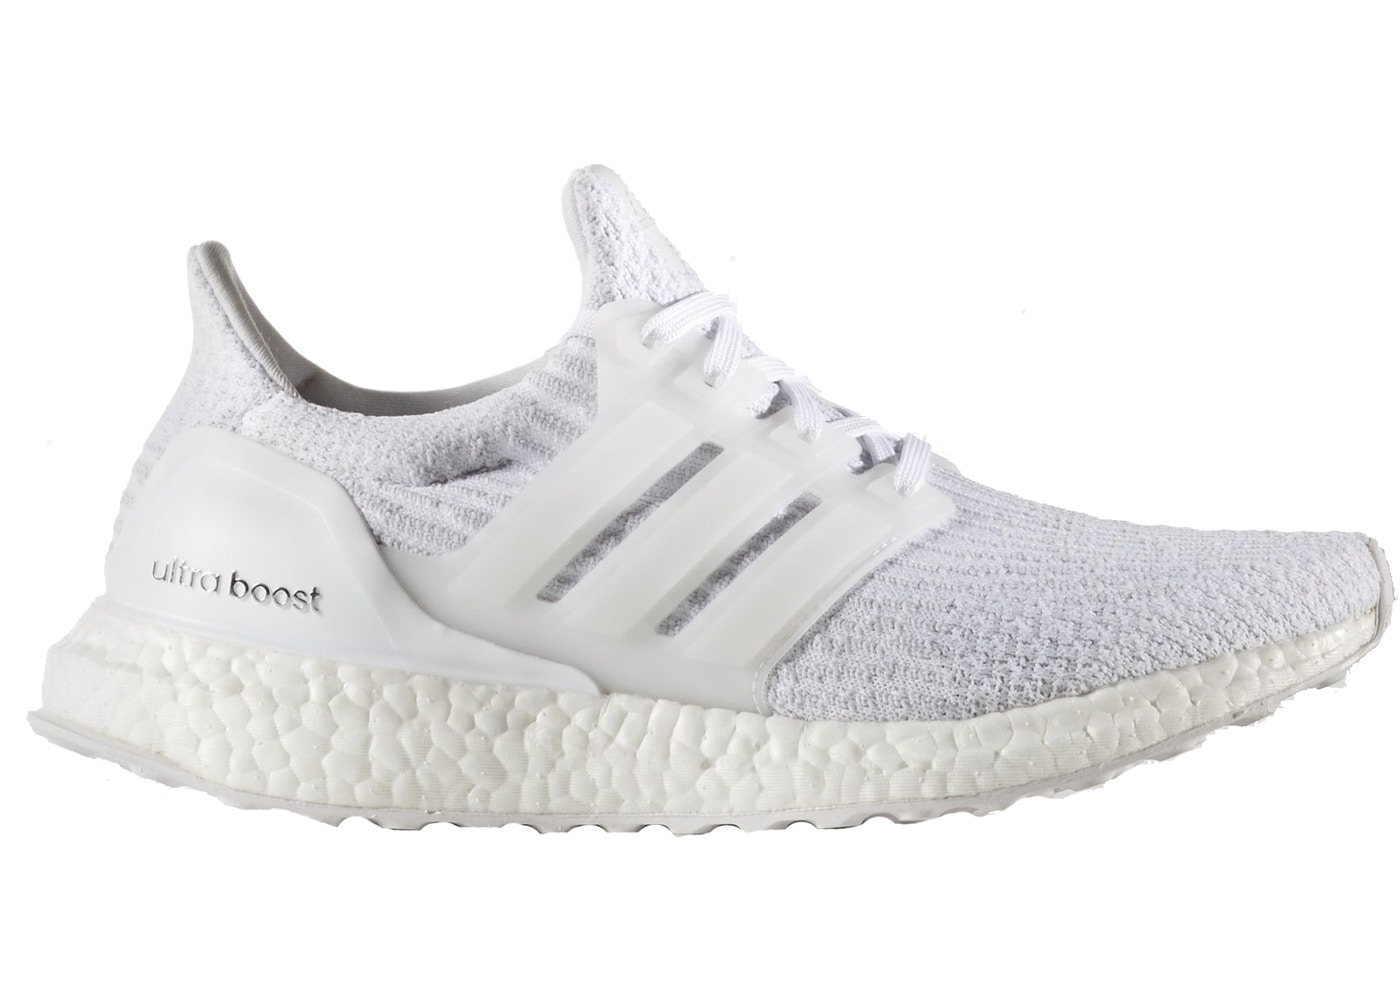 f35a6bfee657 adidas Ultra Boost 3.0 Triple White (W) - BA7686